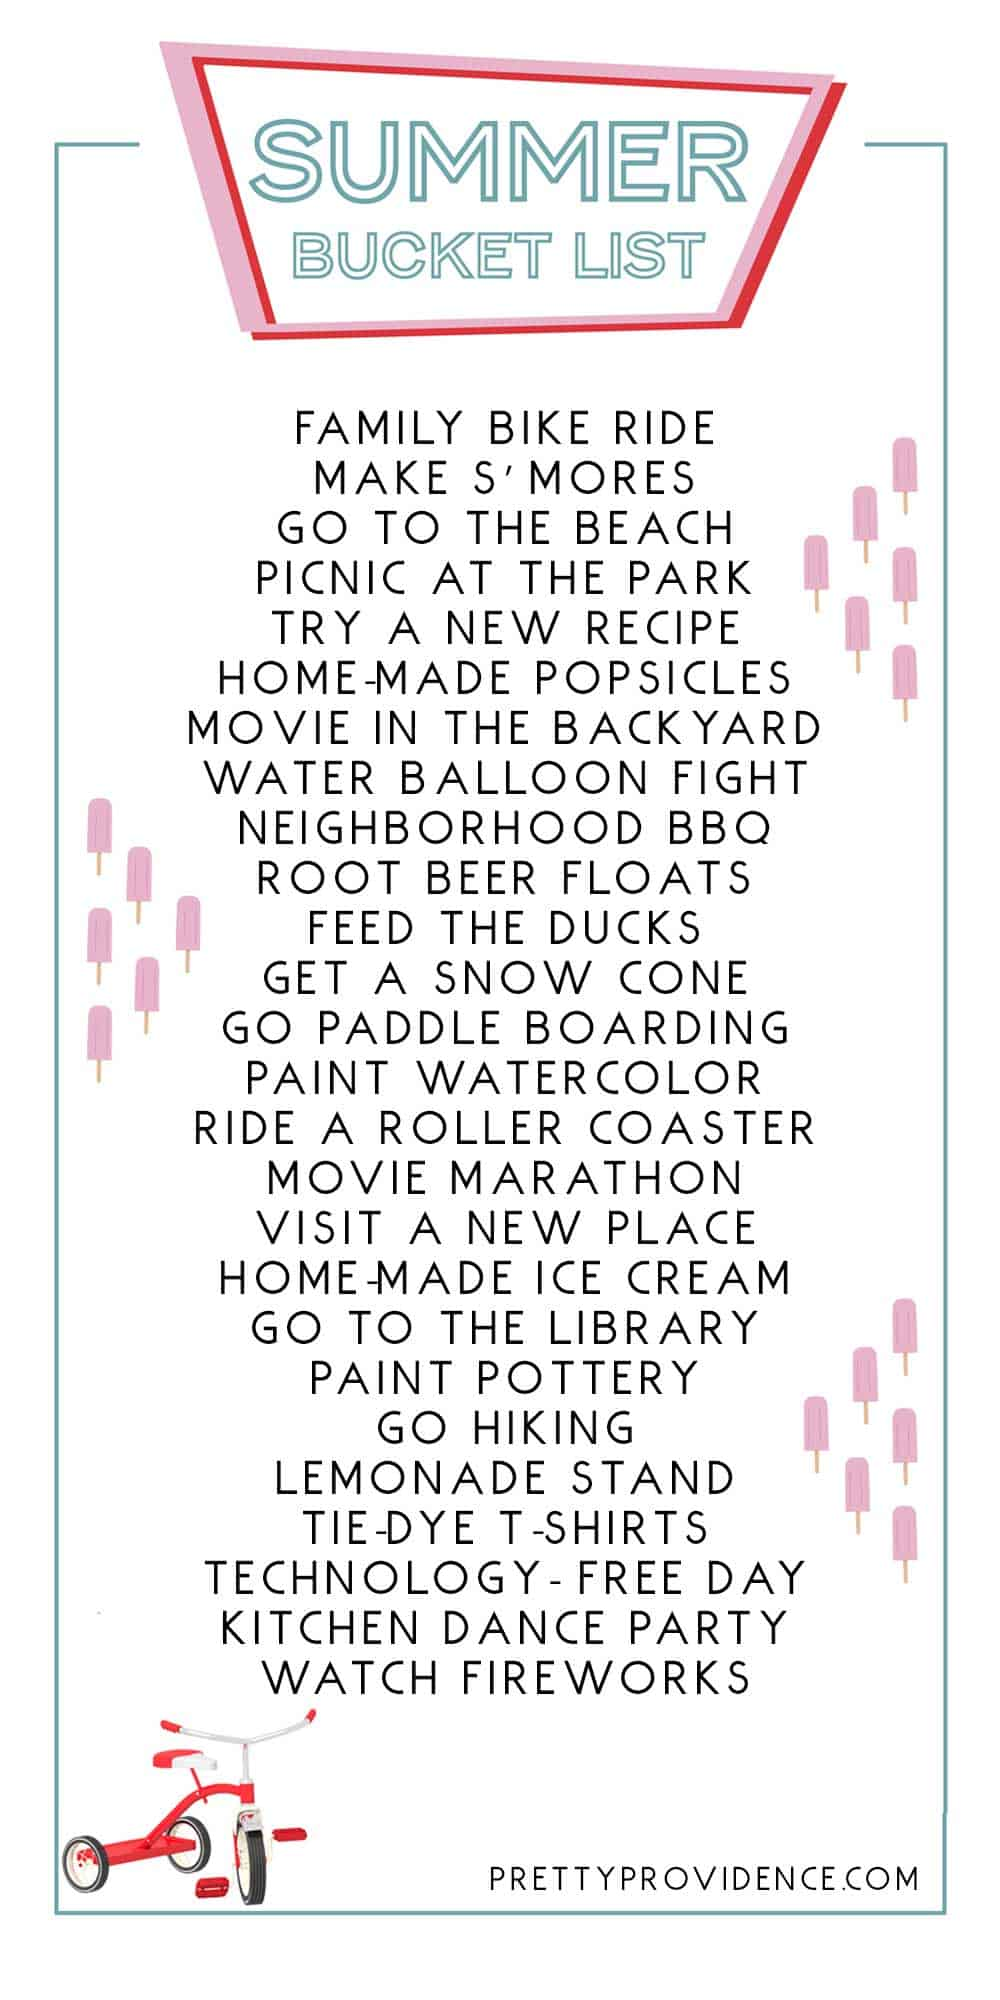 Summer Bucket list ideas + FREE printable to use!